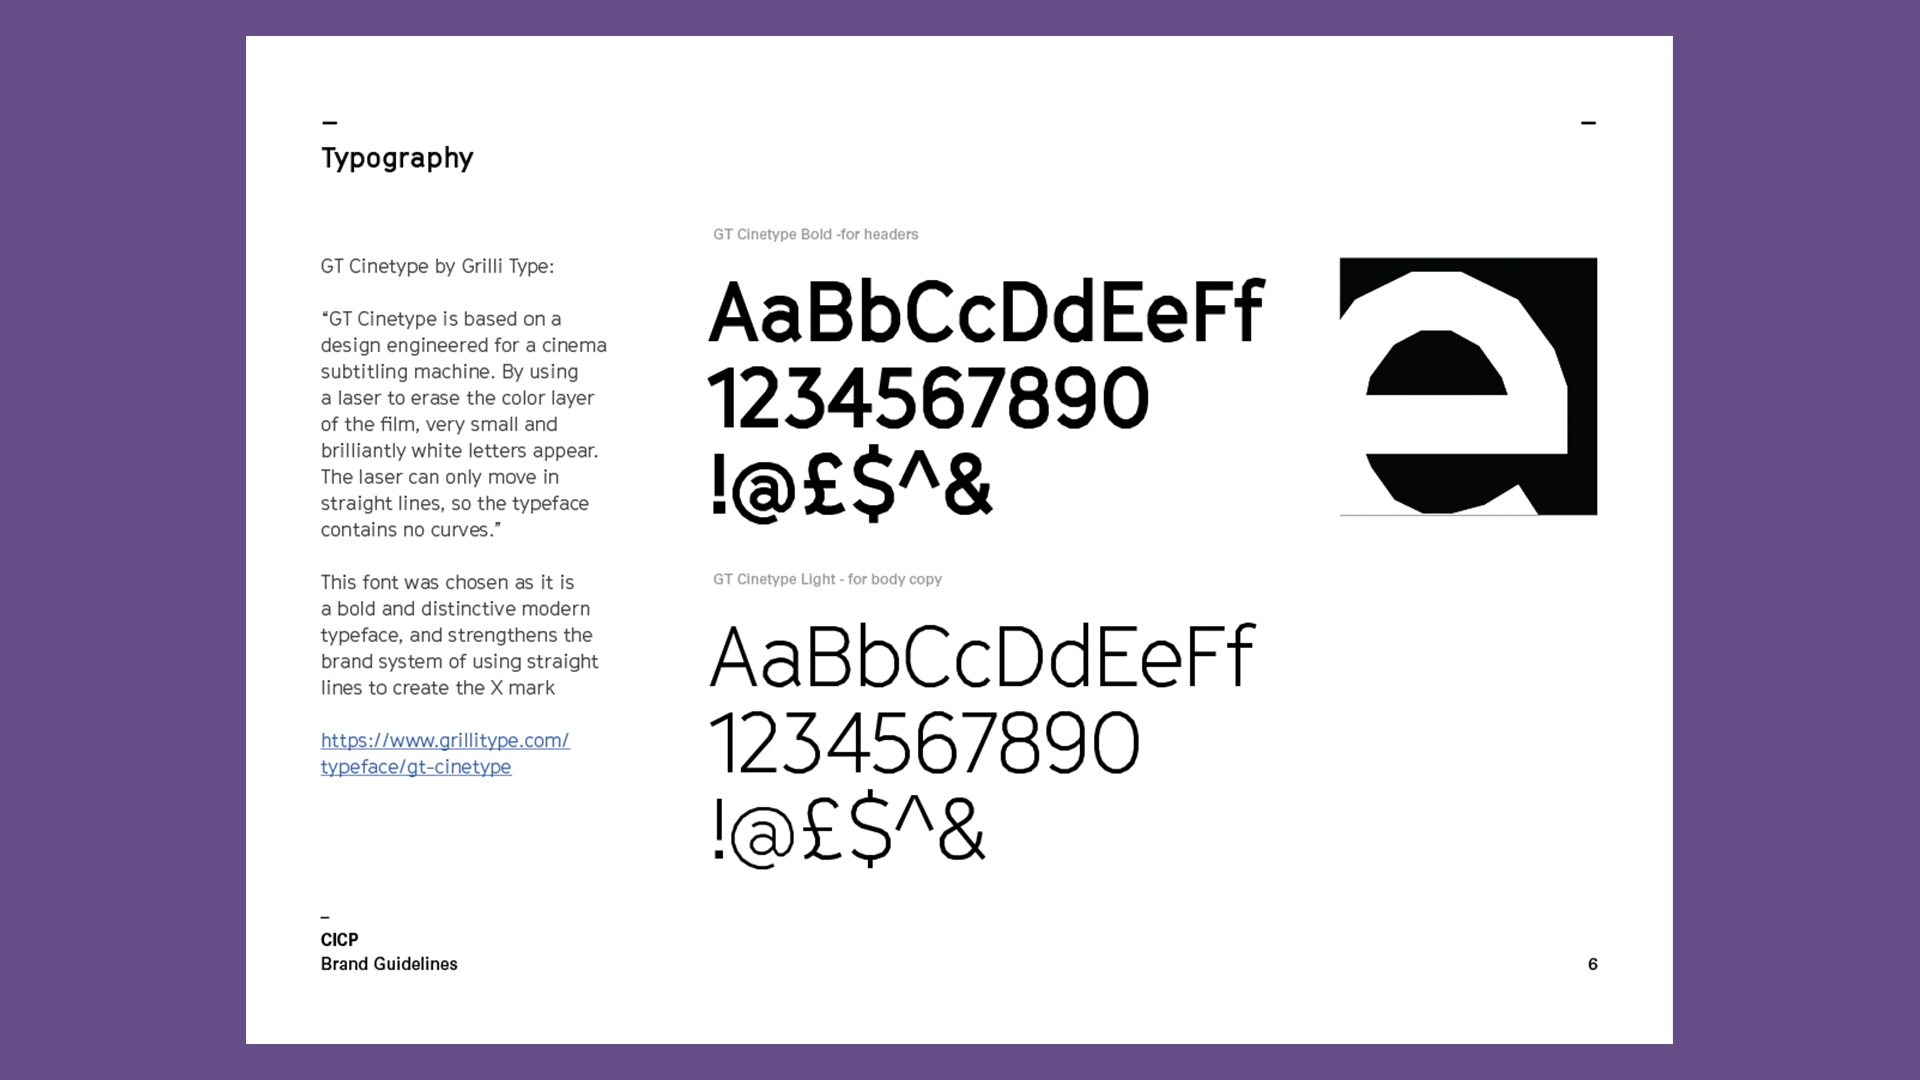 Arts council brand guidelines